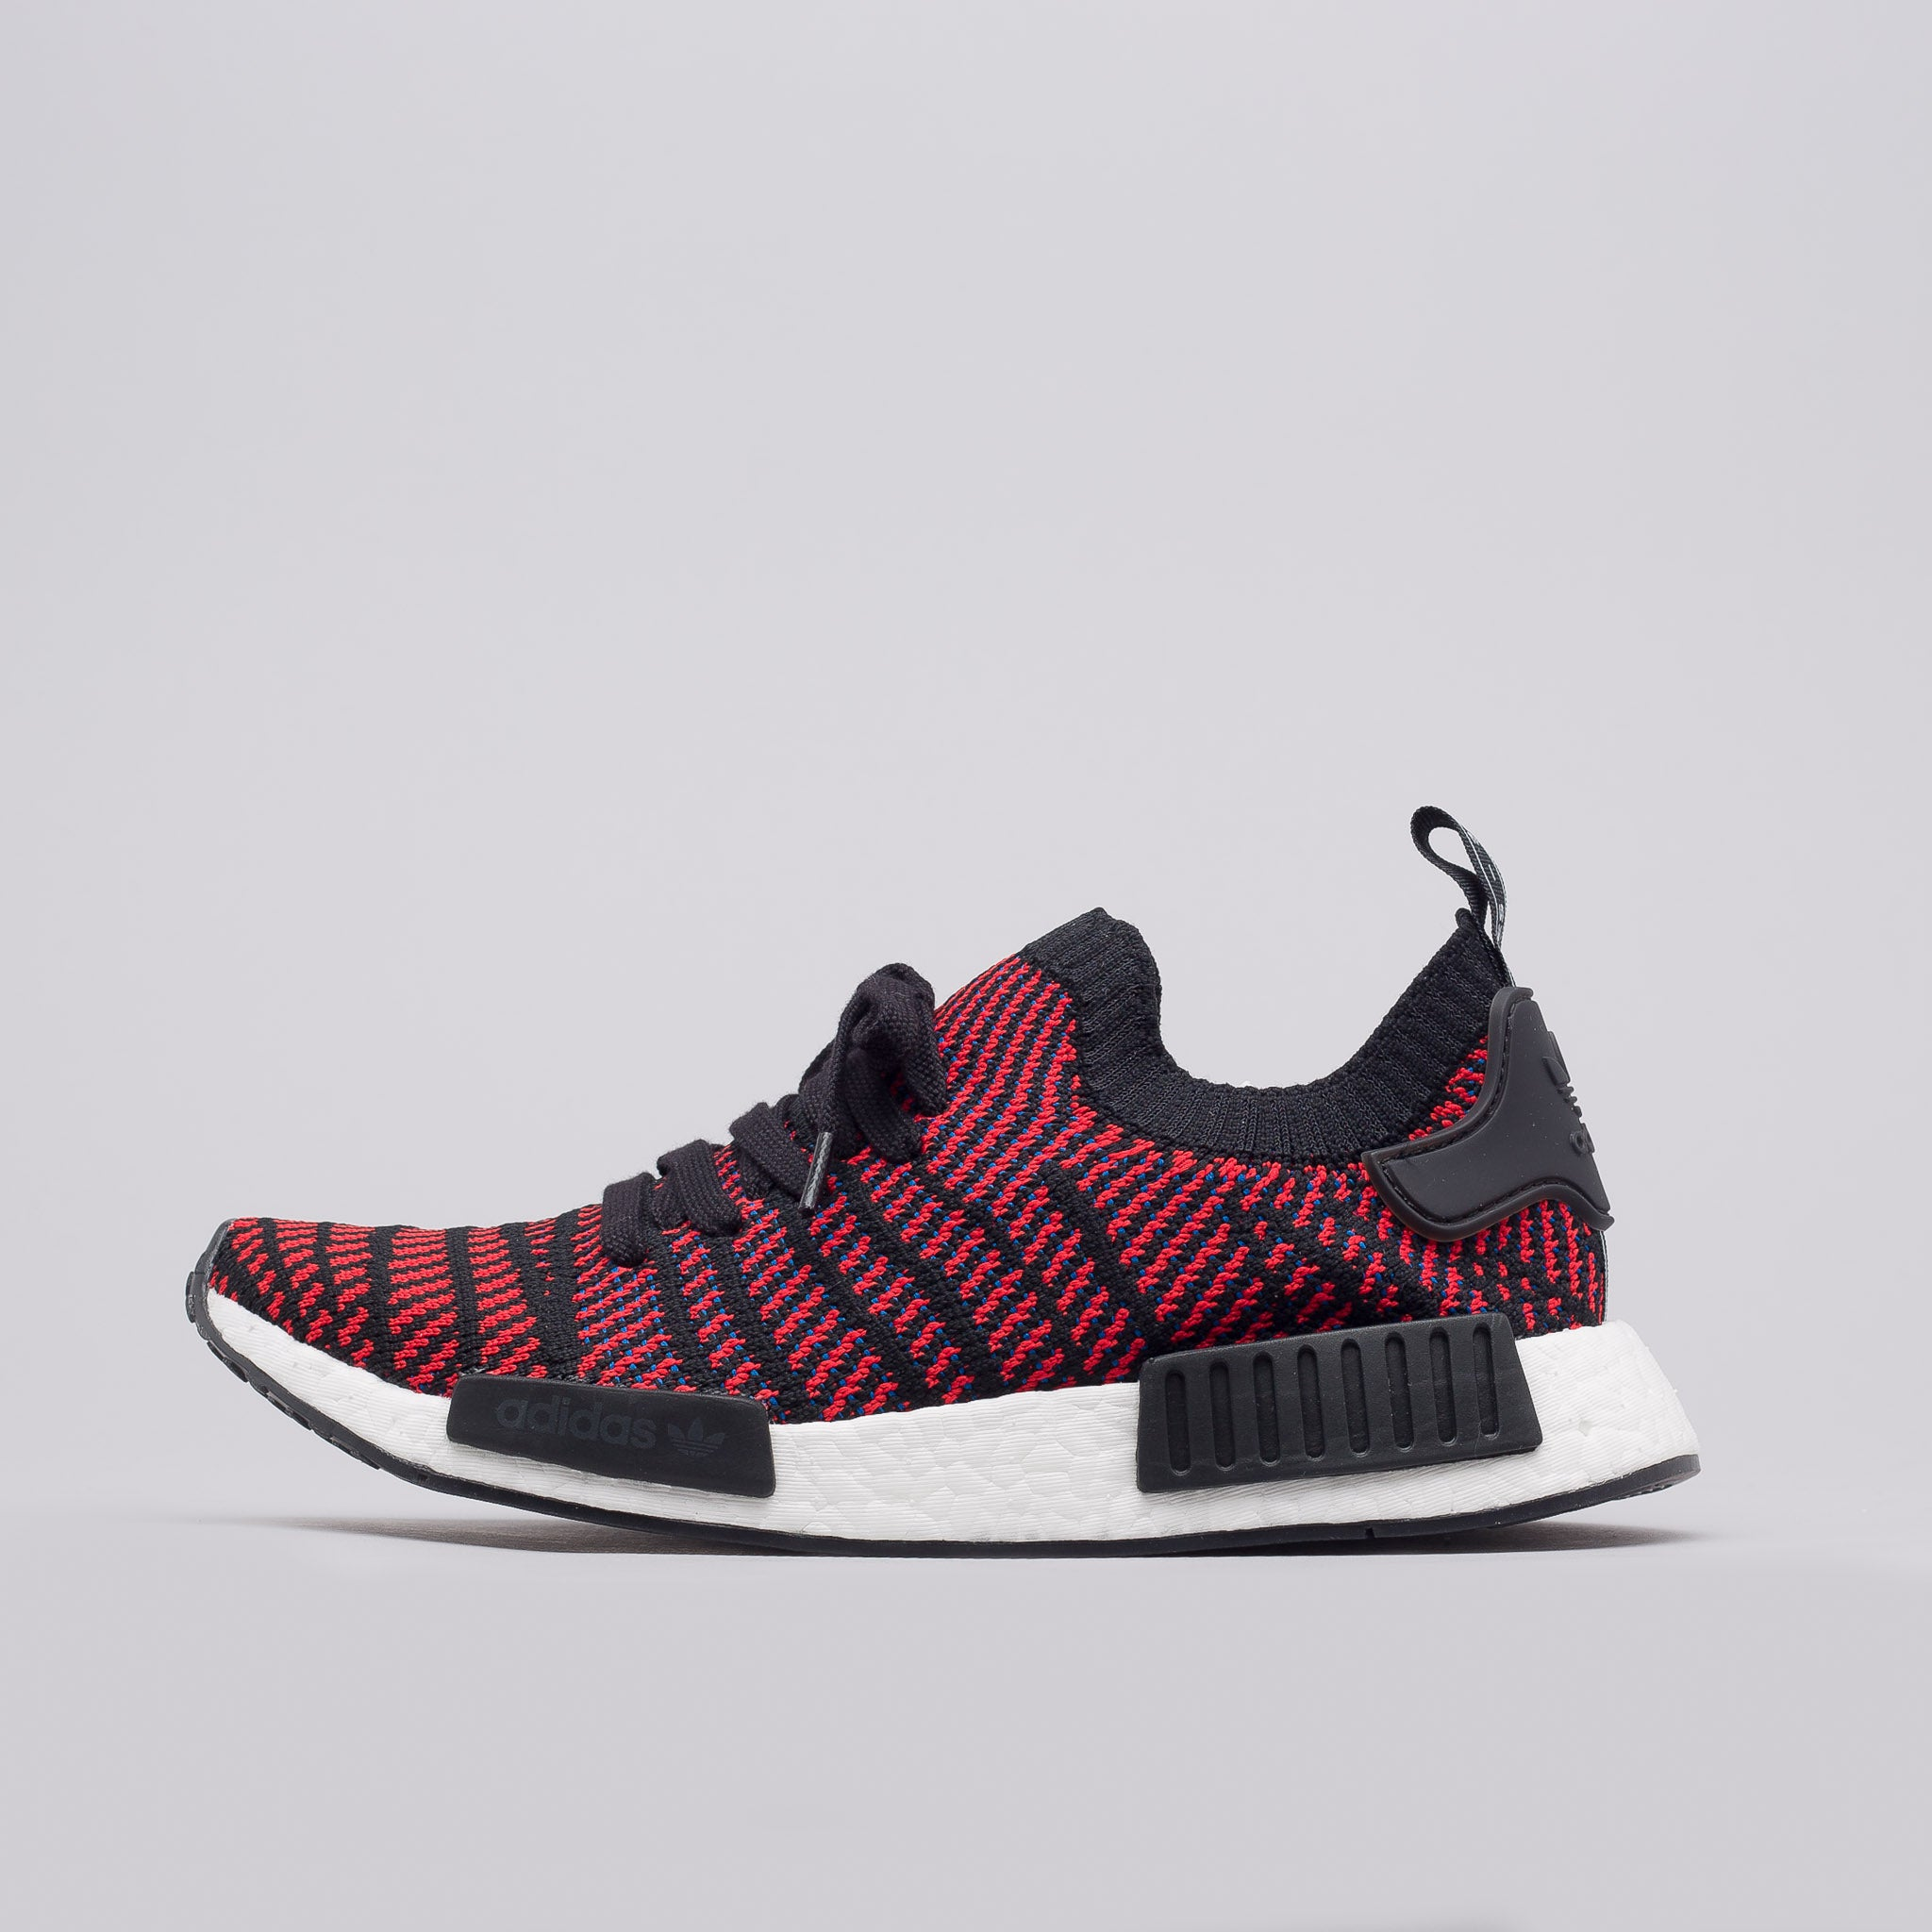 Adidas NMD R1 Runner WOMENS Salmon S76006 from Adidas